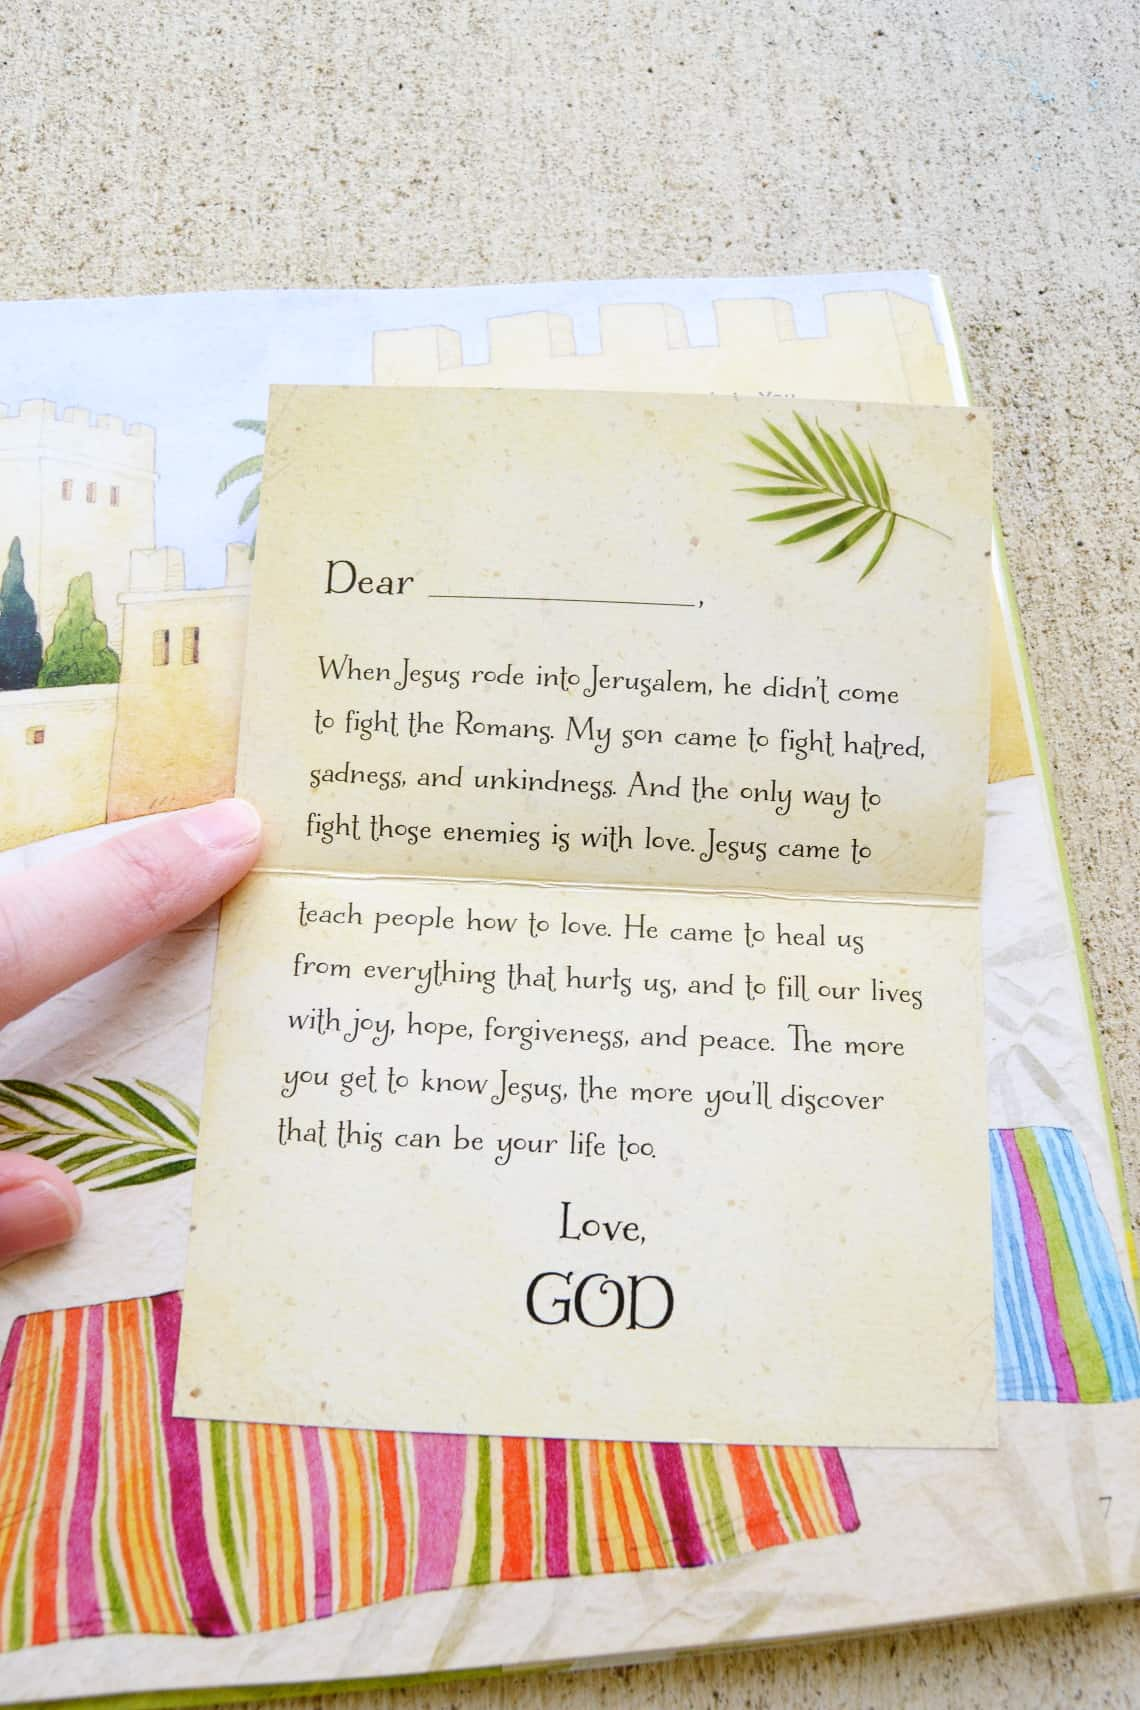 The flaps lifted up to show the love letters from God